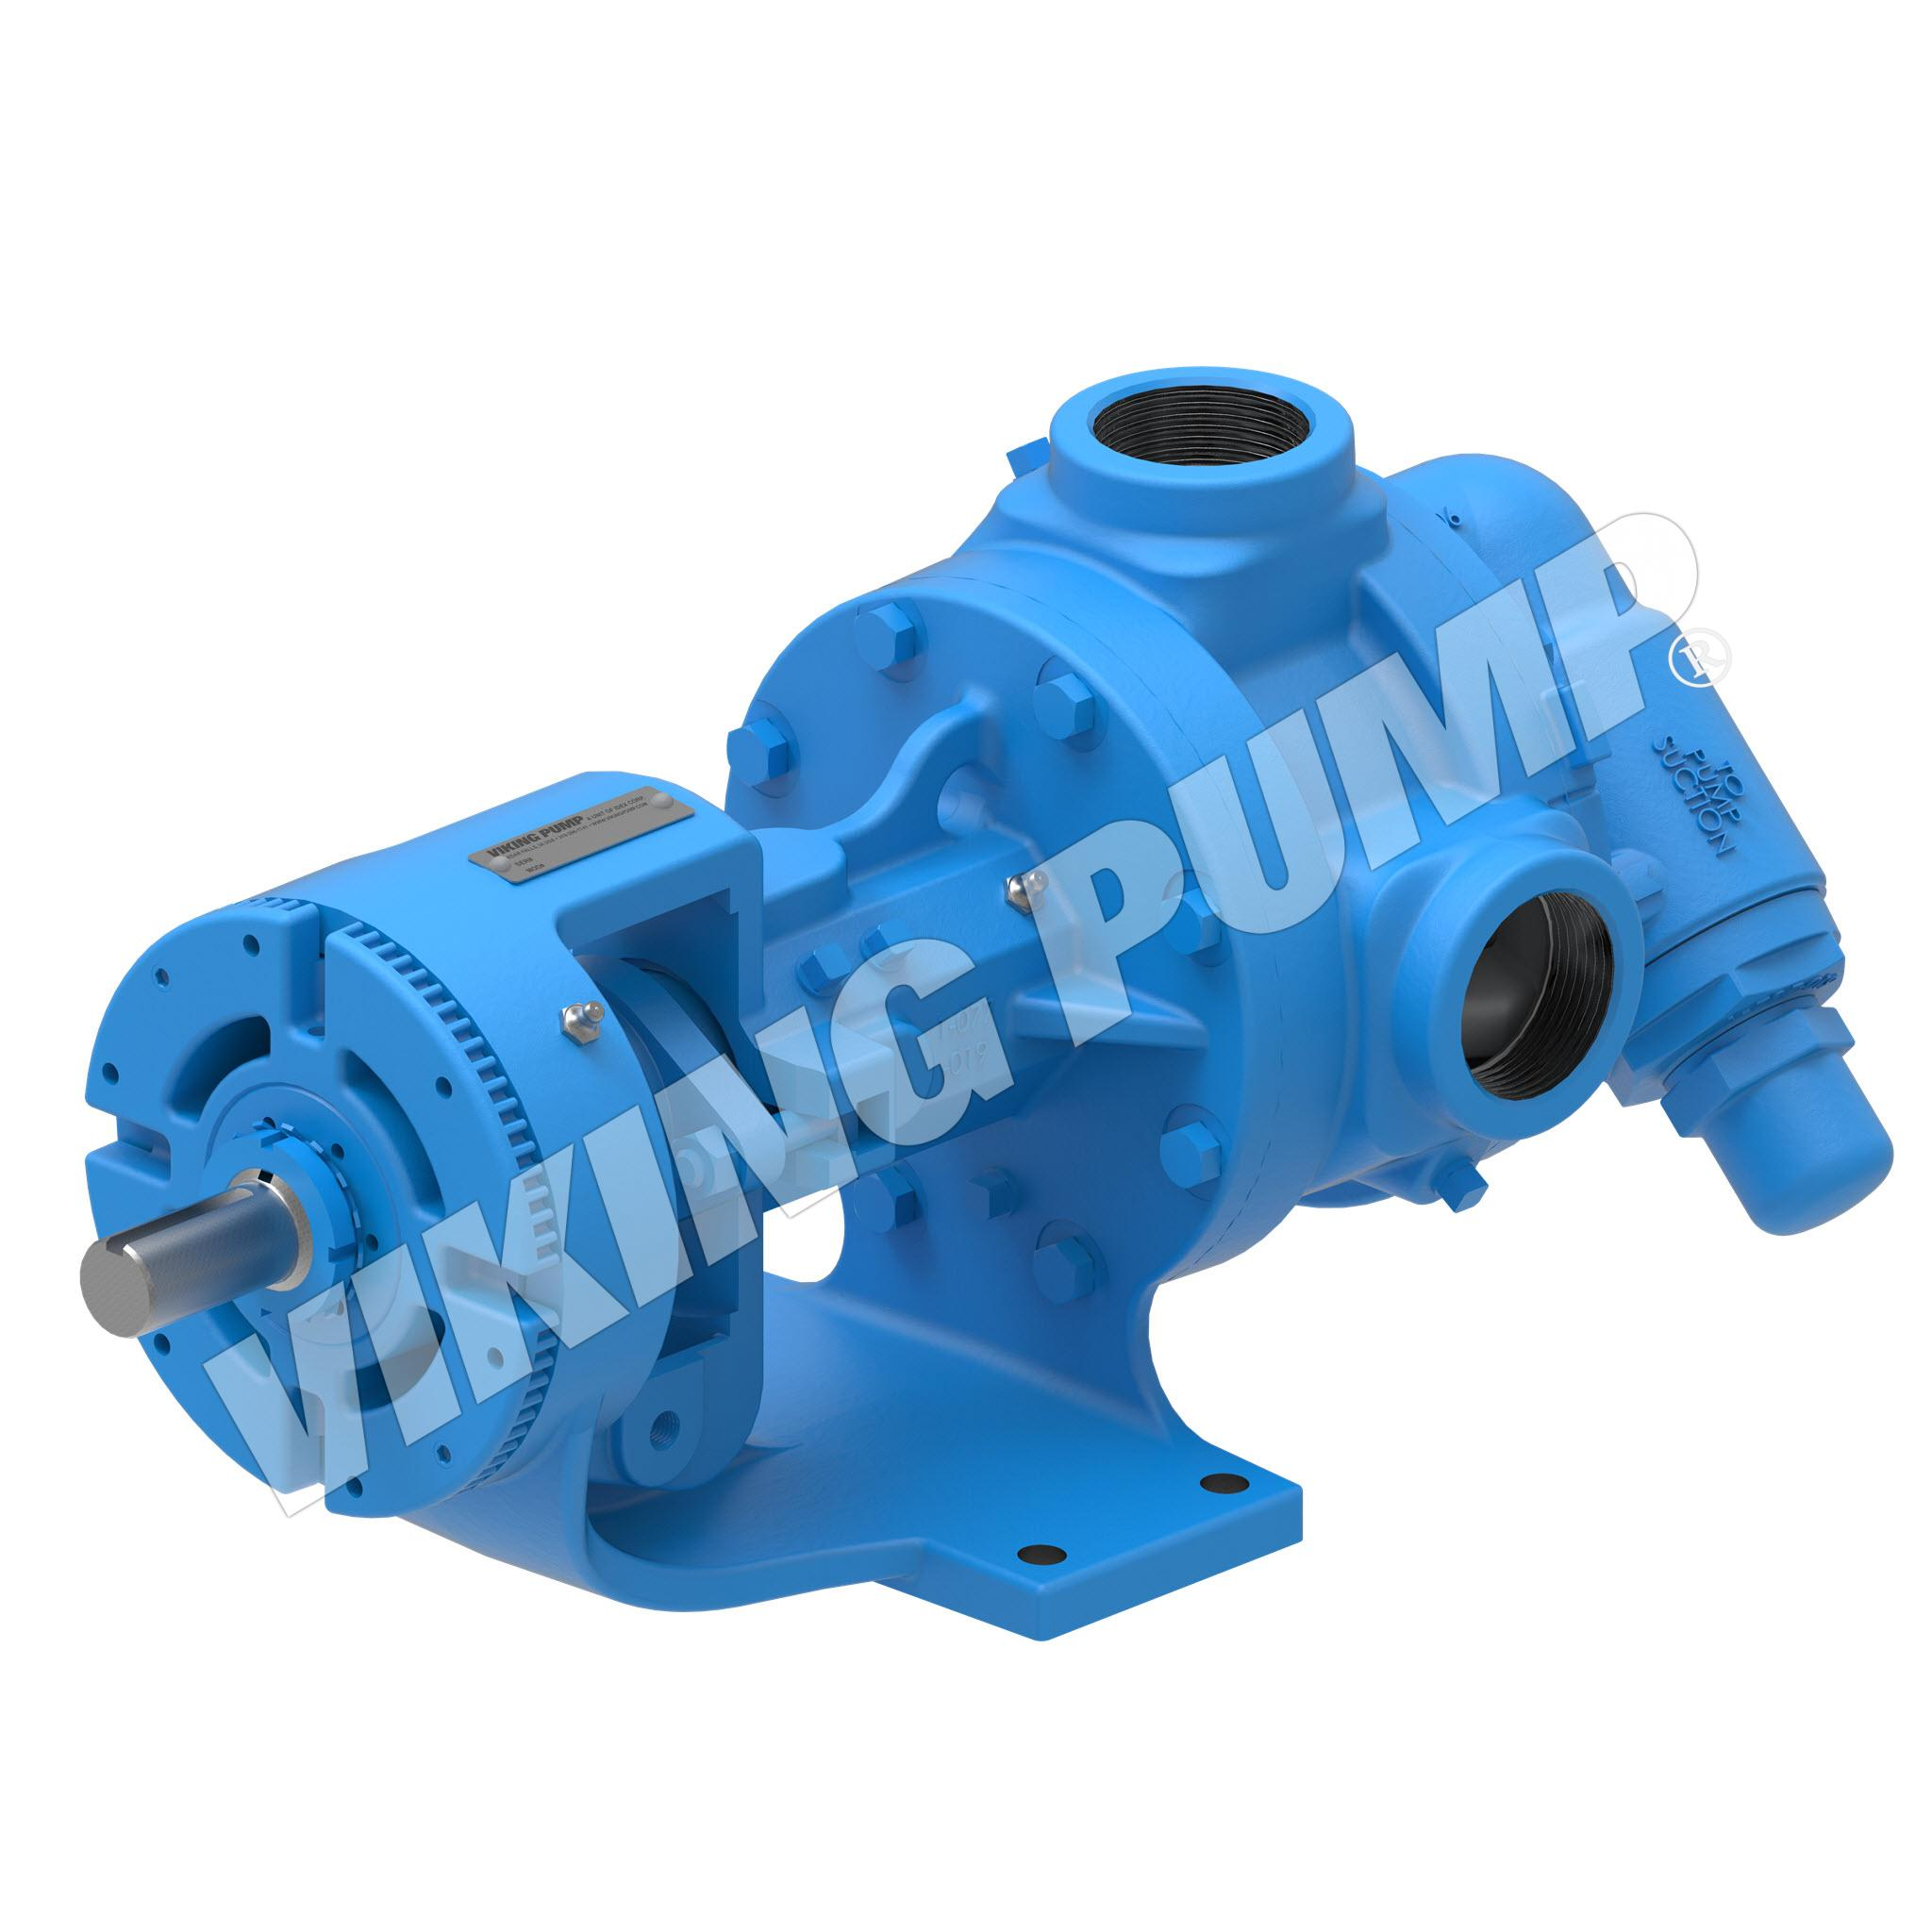 Model K4126A, Foot Mounted, Mechanical Seal, Relief Valve Pump